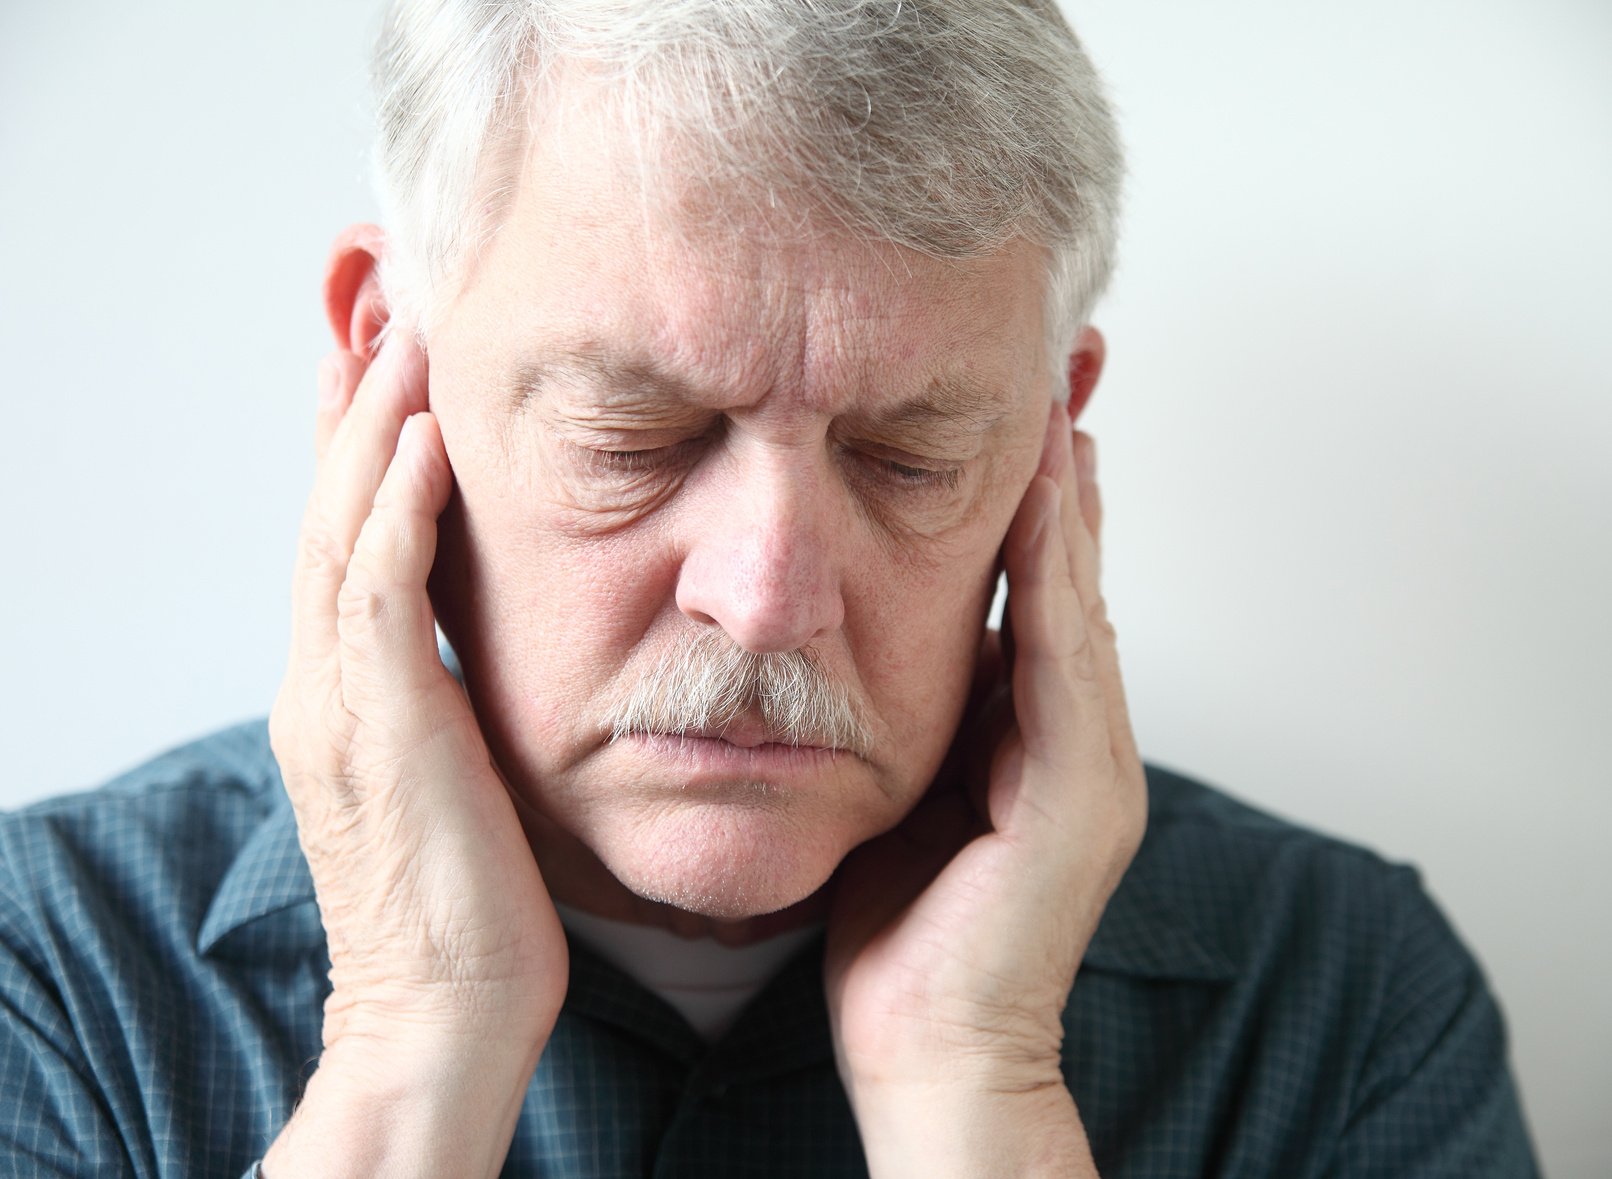 Do you have TMJ or TMD?